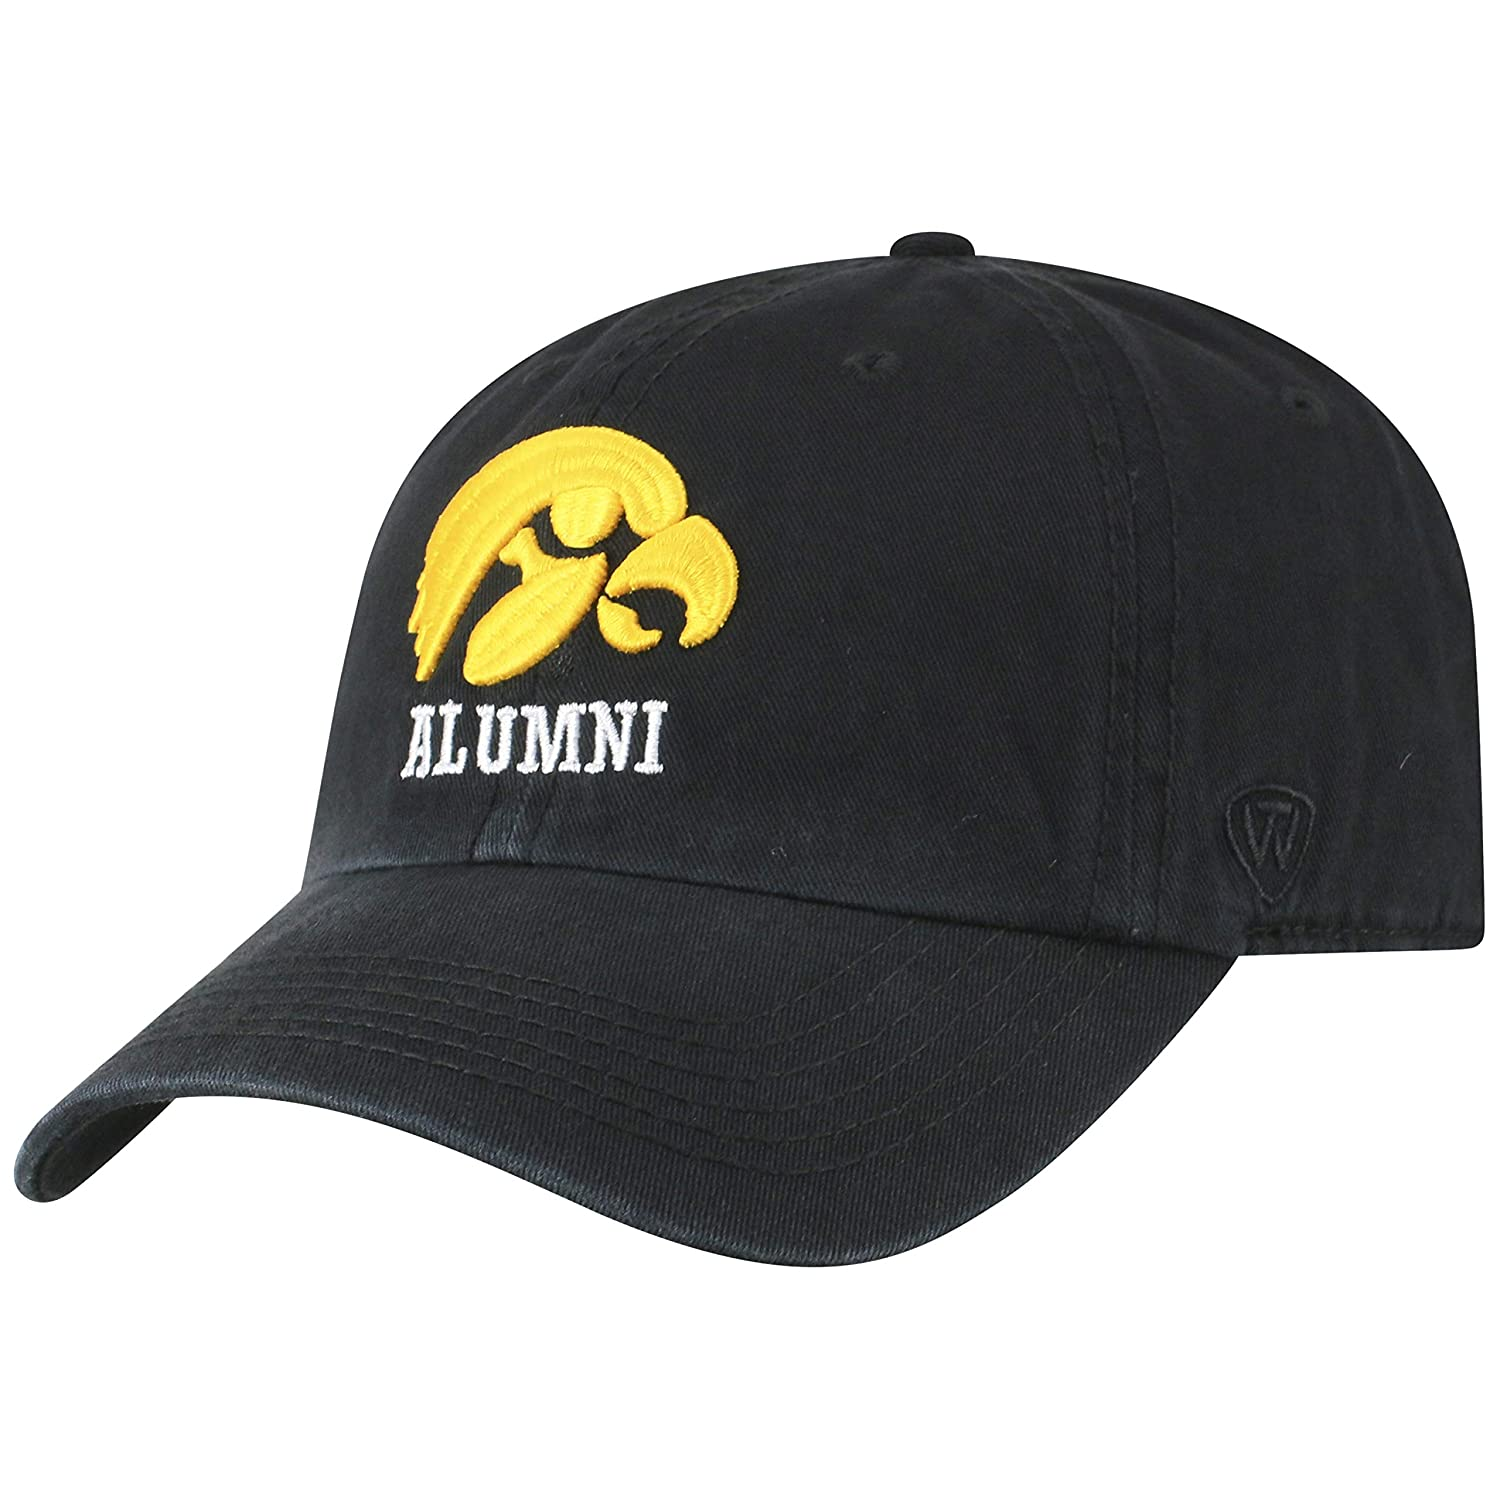 Top of the World Men's Relaxed Fit NCAA Alumni Cotton Crew Hat Cap